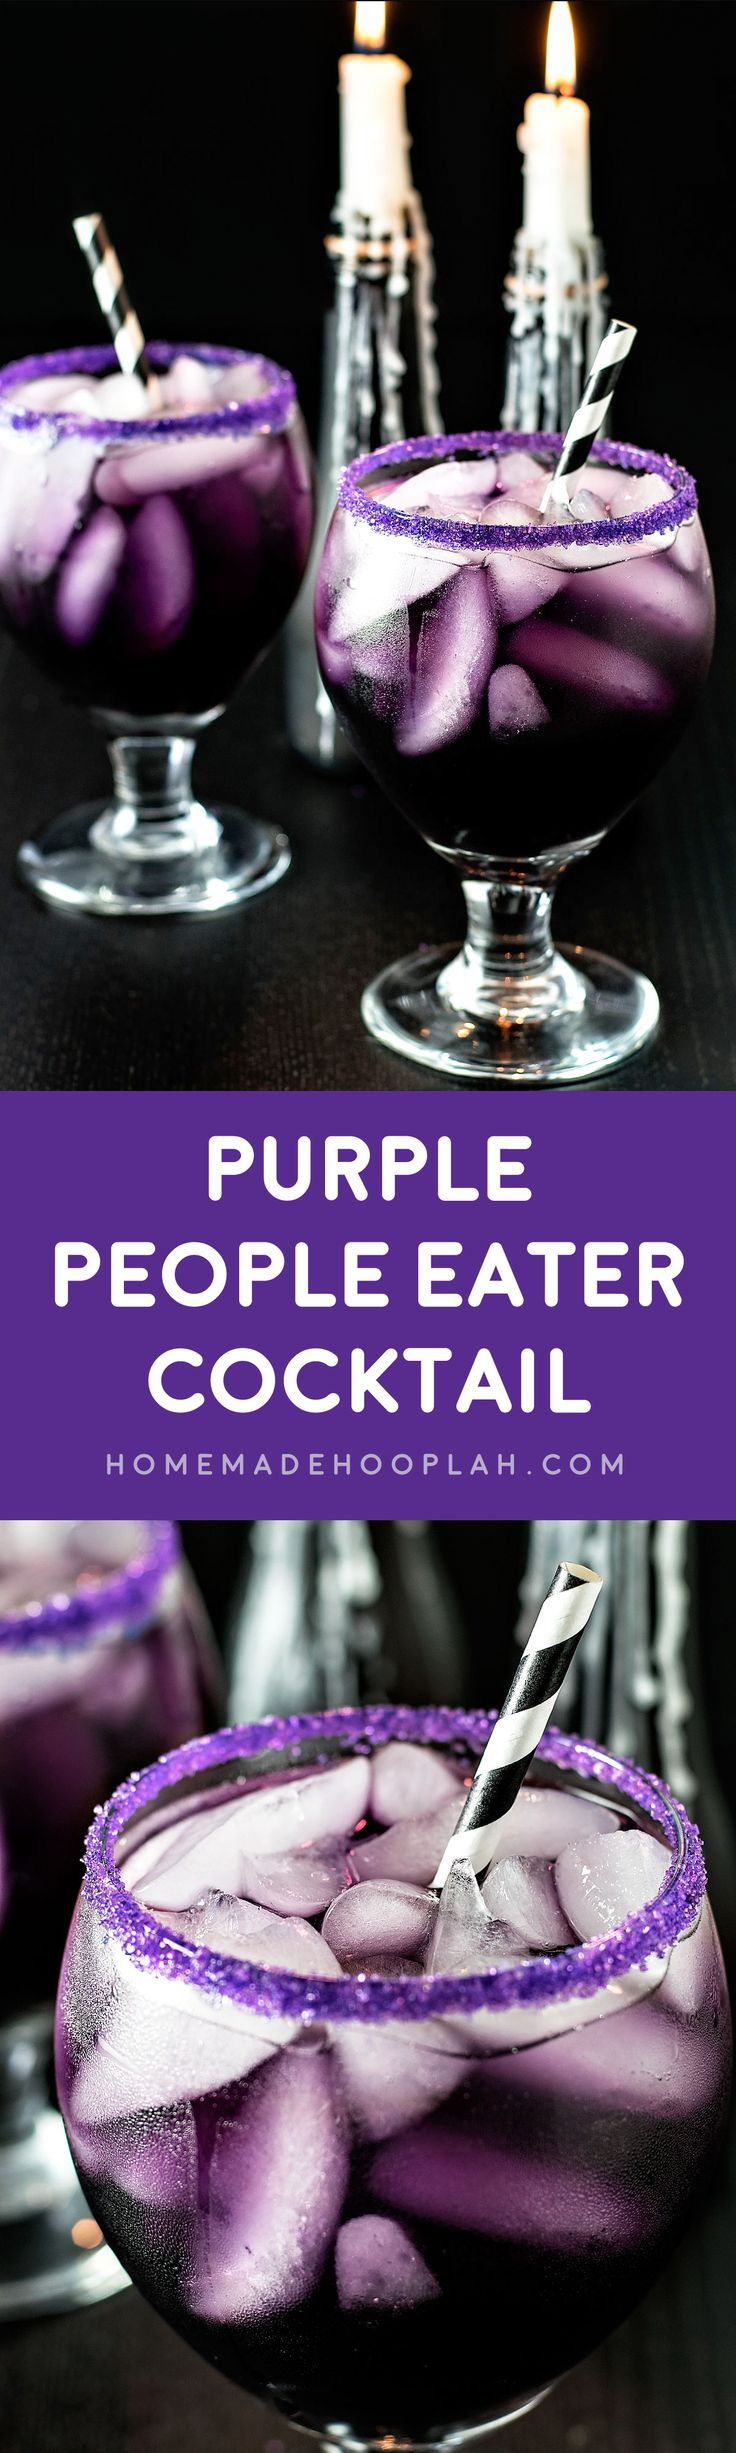 Purple People Eater Cocktail! A tasty (and creepy!) cocktail that get's it's purple hue from blue curacao, grenadine, and cranberry juice. A perfect cocktail for any type of party! | HomemadeHooplah.com